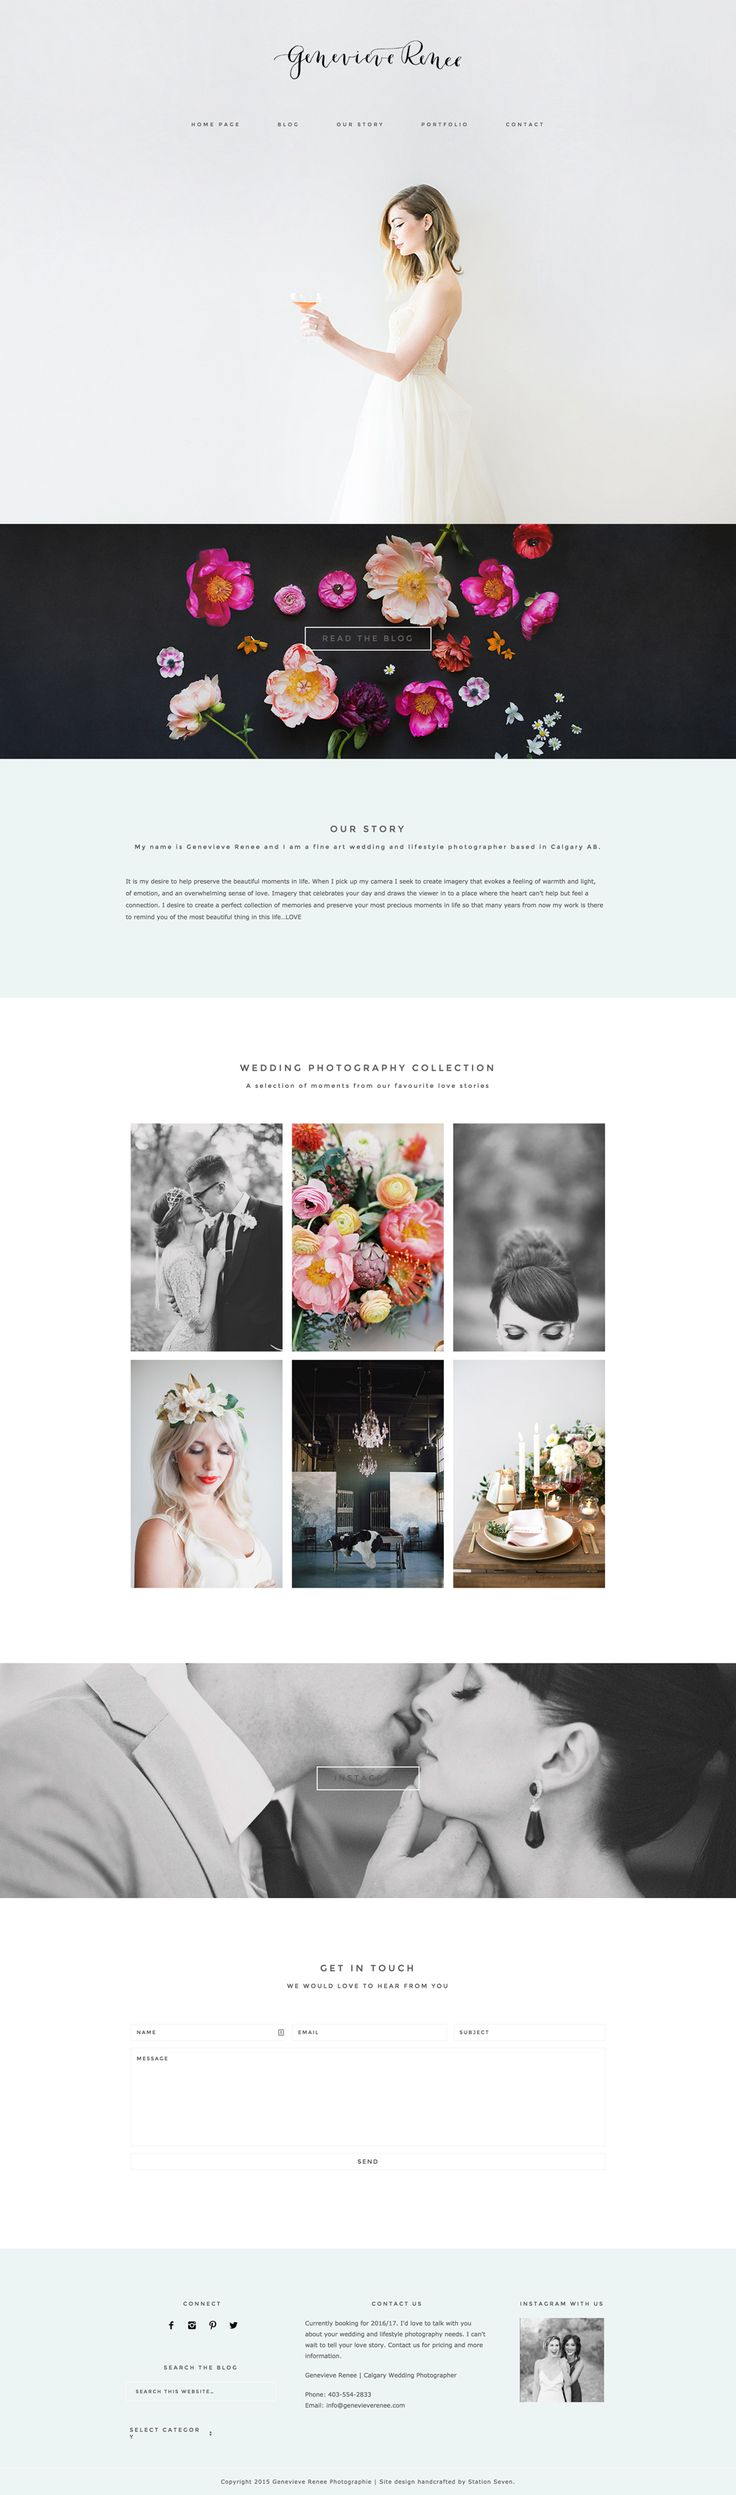 포트폴리오 참고자료 심플한 레이아웃과 이미지가 맘에드ㅁ The new site of talented wedding photographer Genevieve Renee is to die for! Running on Station Seven's Coastal theme :) #wordpress #webdesign